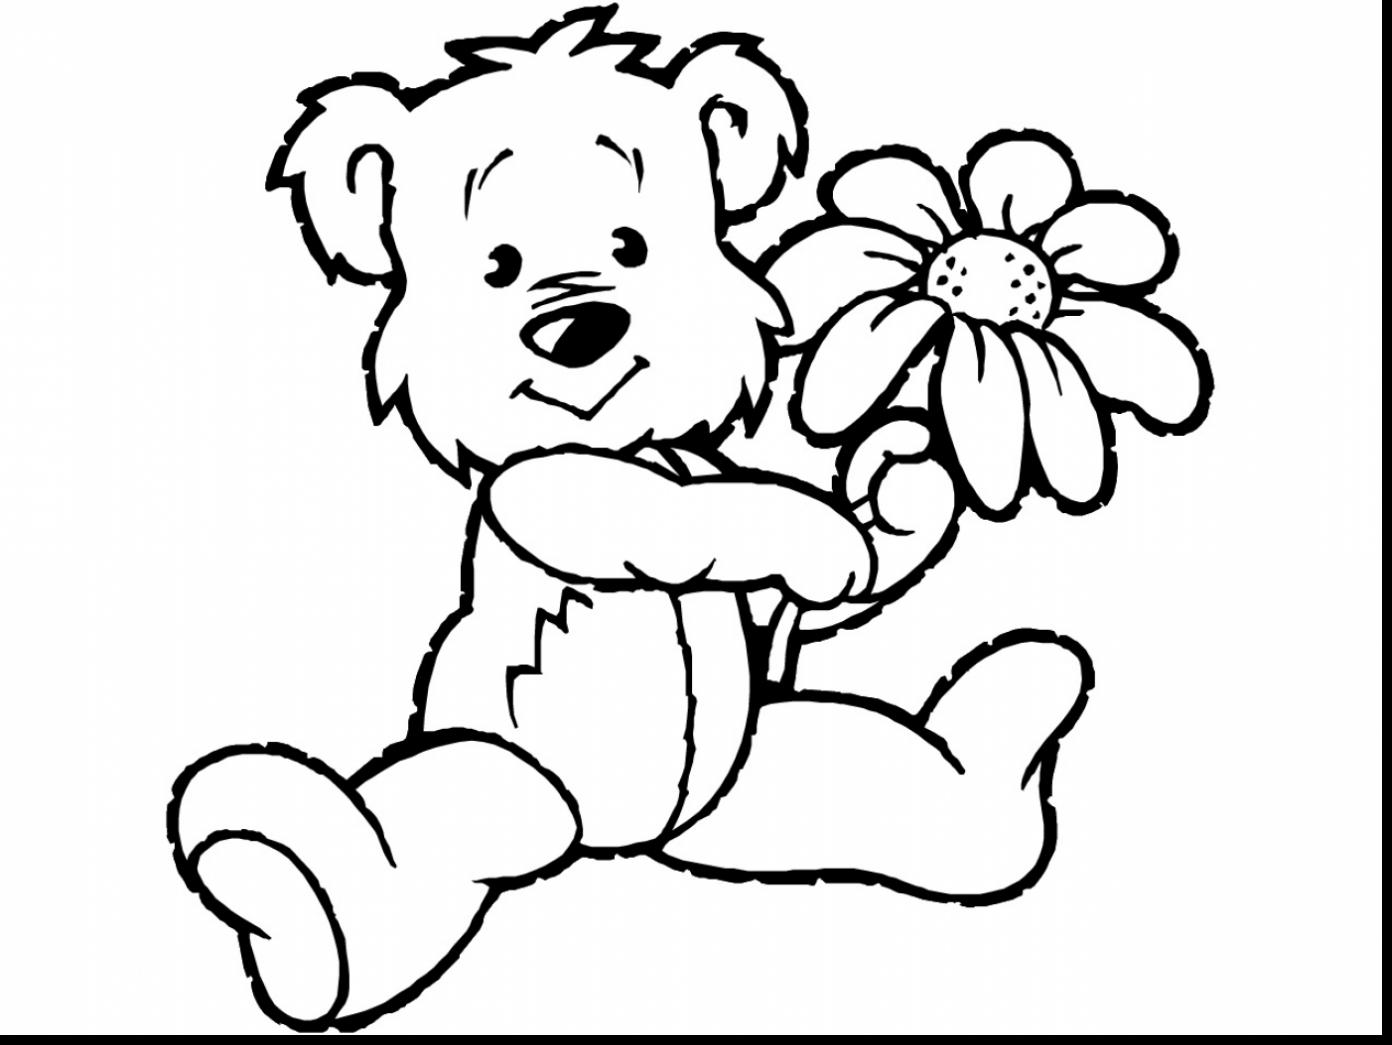 1392x1045 Coloring Pages Cartoon Panda Coloring Pages 15 Chic Idea At Draw